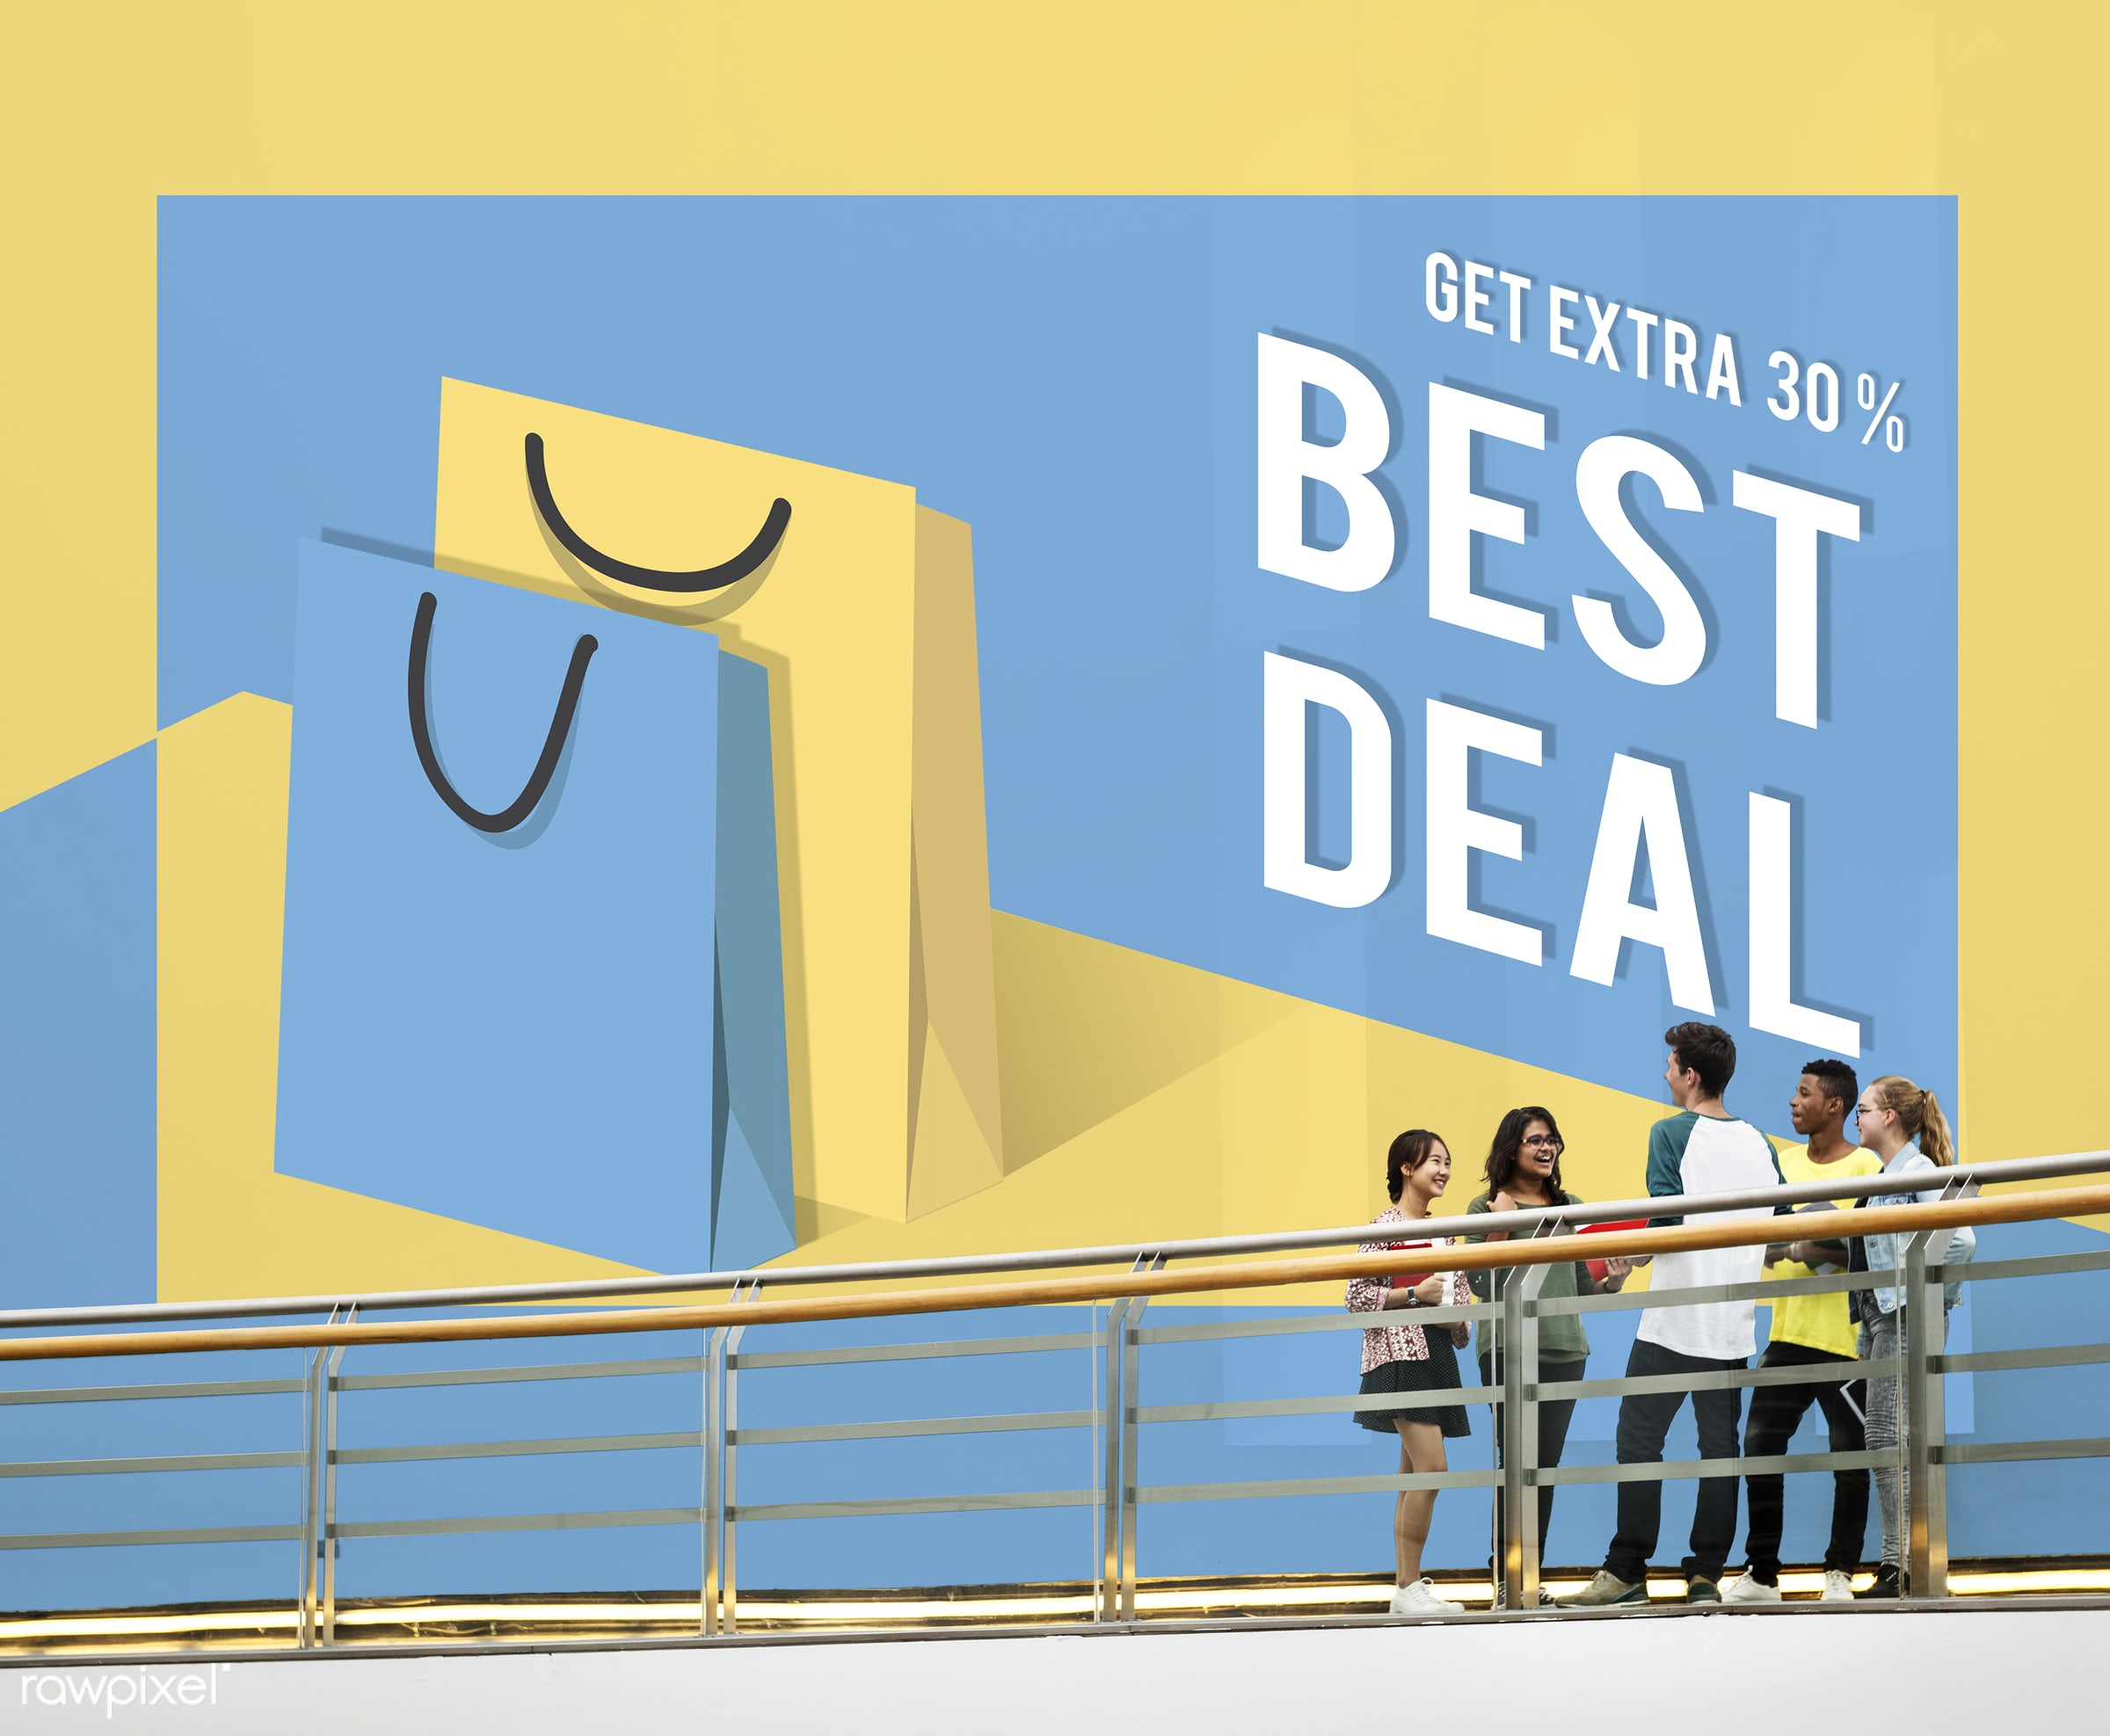 best deal, best offer, best price, book, books, boy, bridge, campaign, carrying, cheap, clearance, commerce, deal, discount...